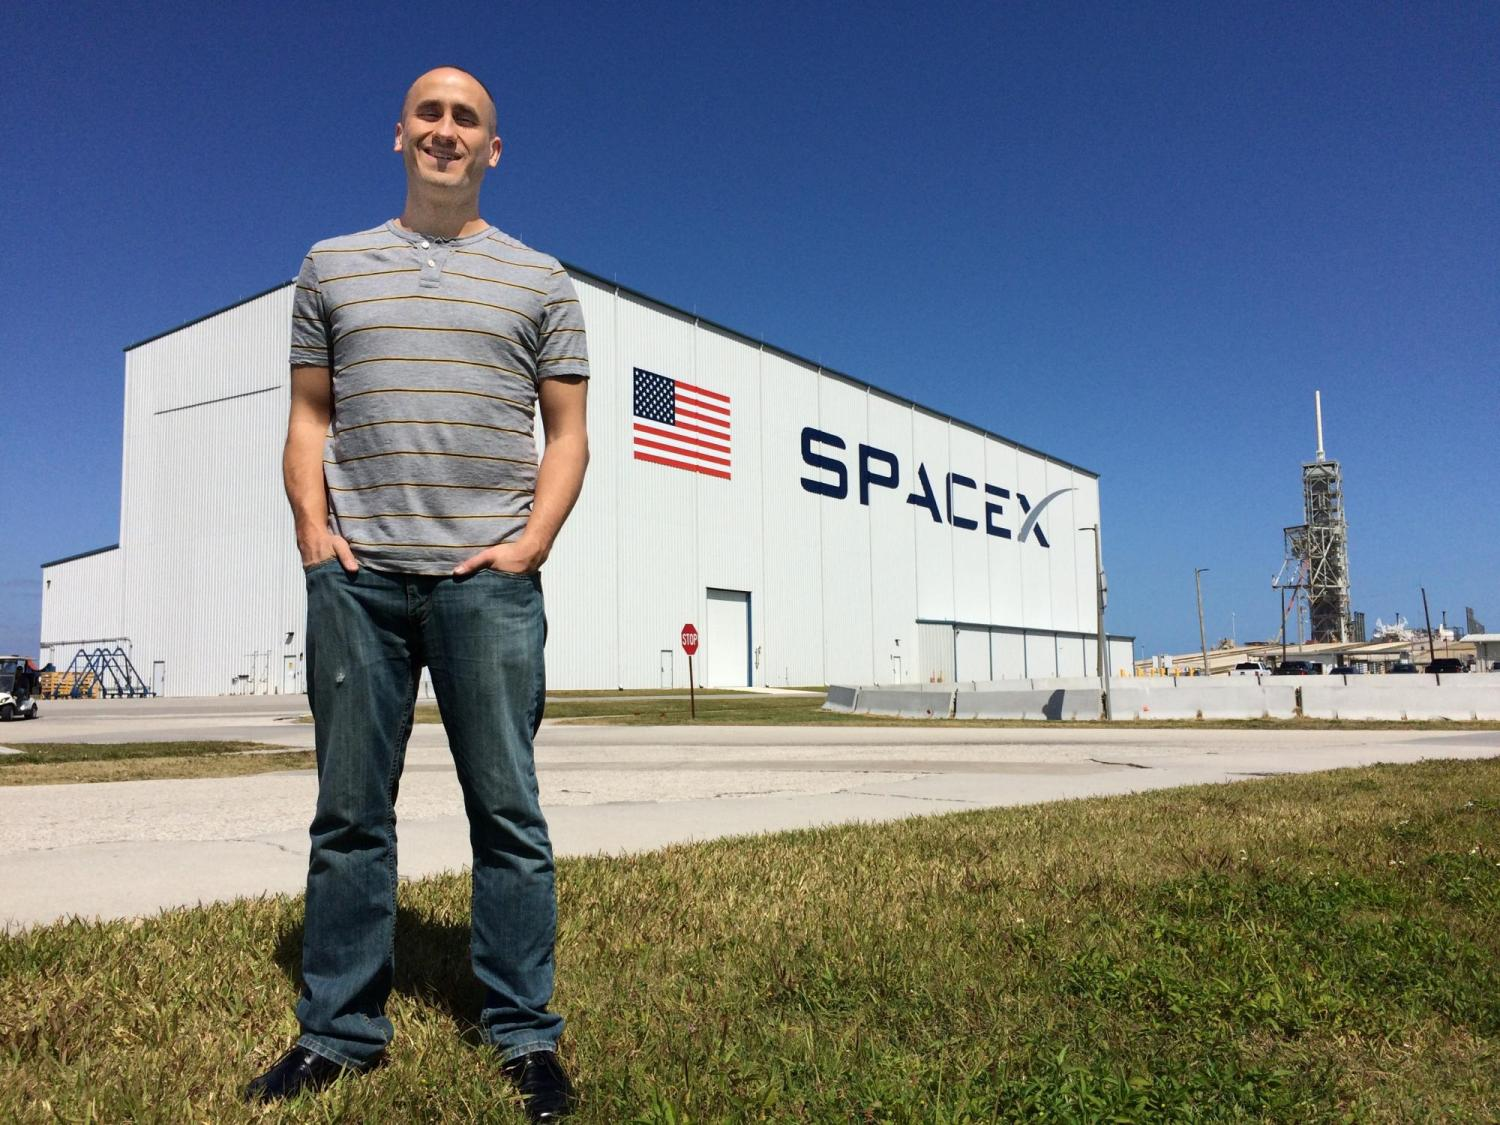 Sam Piper, aerospace engineering student at CU spearheaded the hardware development effort for the Micro-11 experiment. Launchpad 39A on the background (this is one of the two launchpads used during the Apollo and Space Shuttle programs and is now leased by SpaceX).